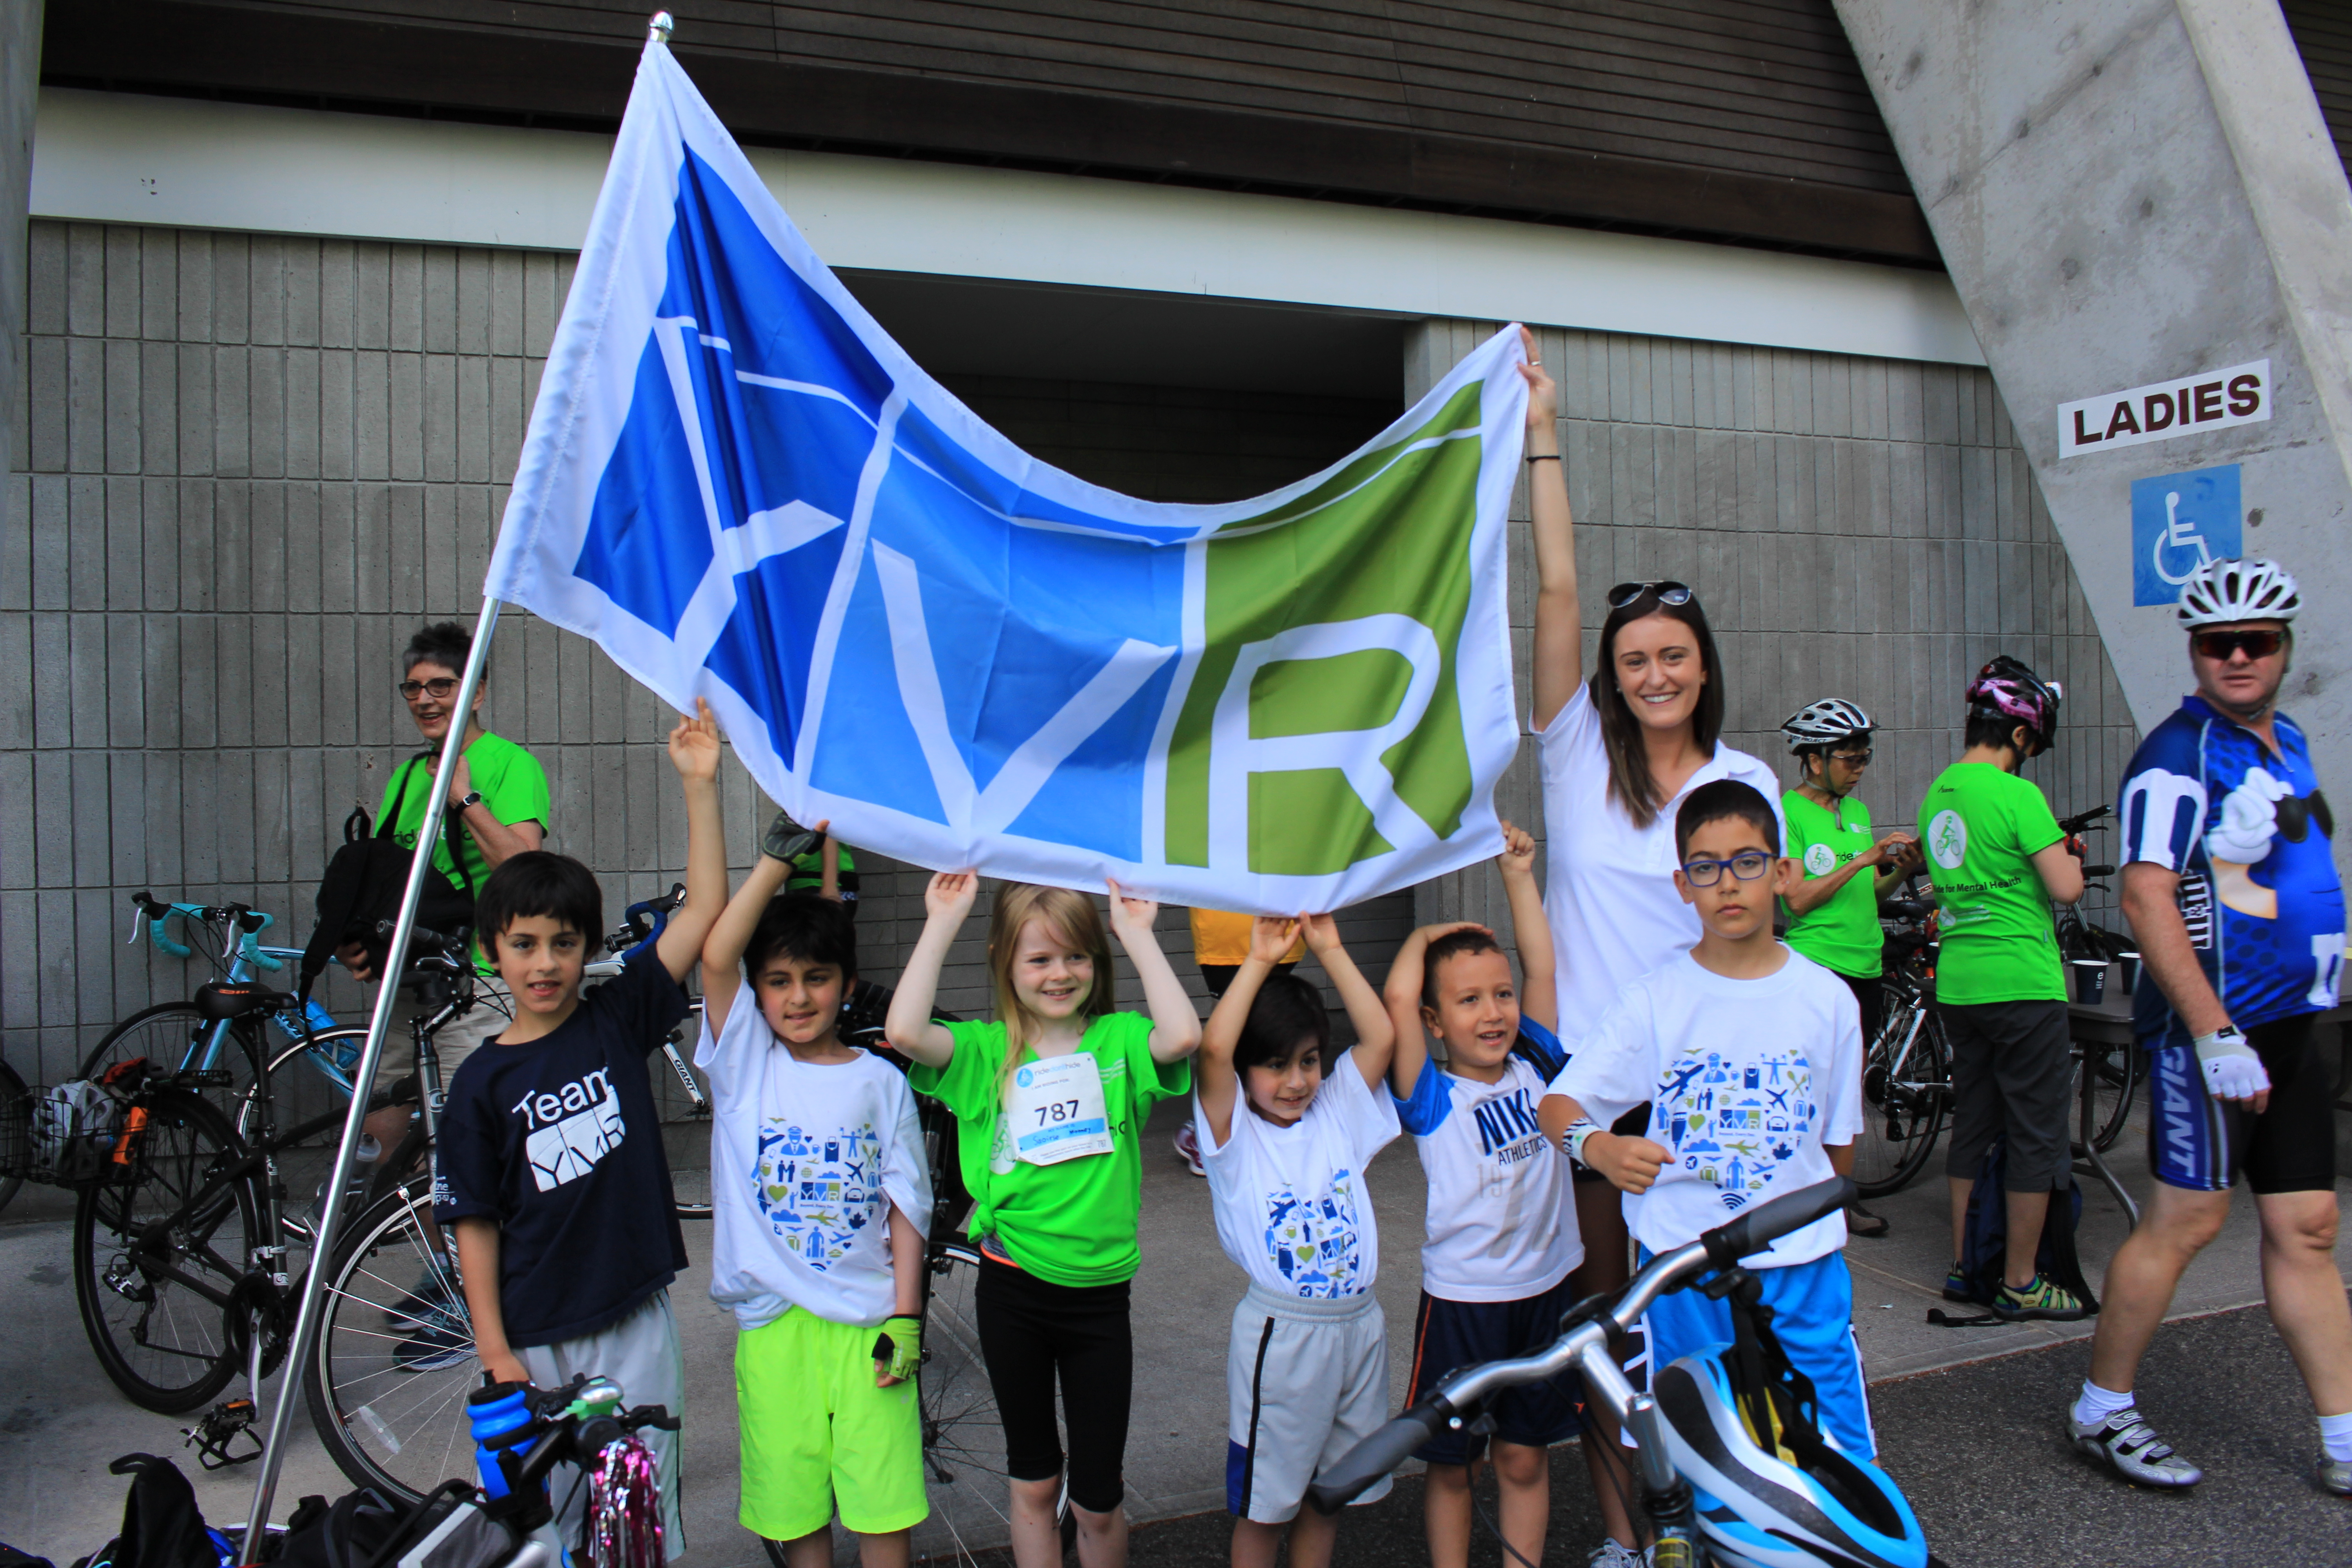 Group photo with children and YVR flag